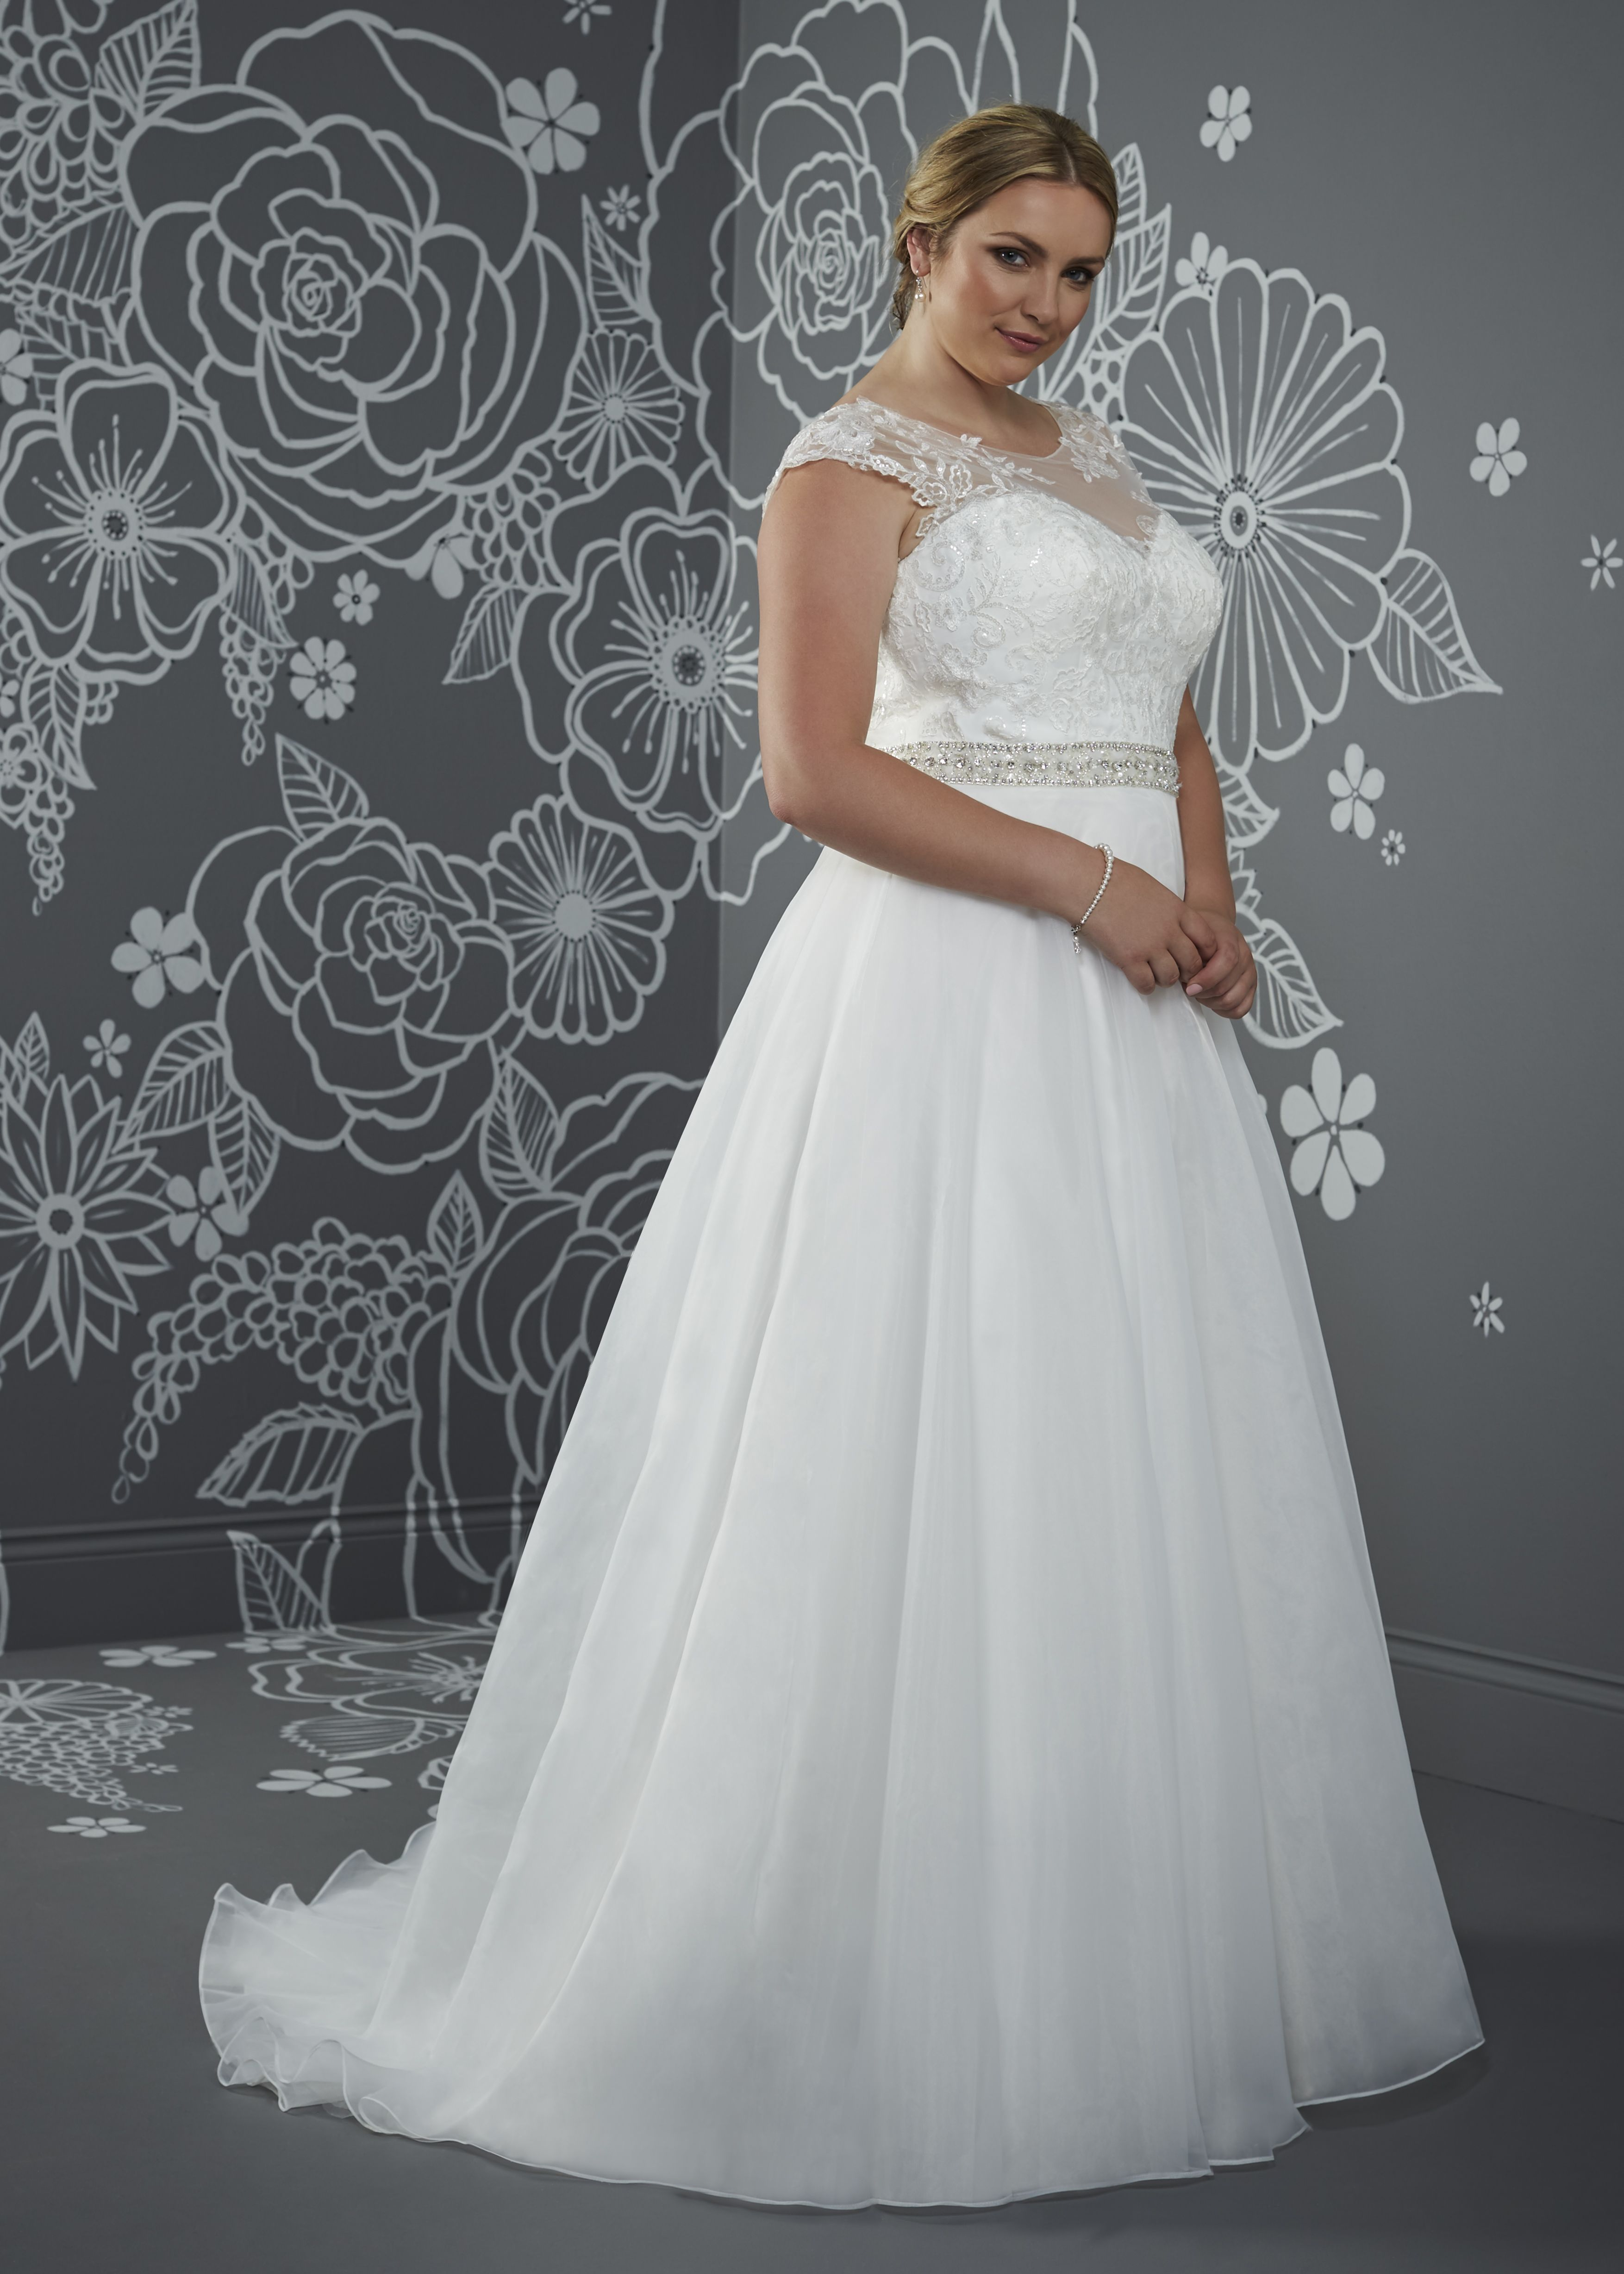 'Snowdrop' from our Silhouette 2017 Bridal Collection